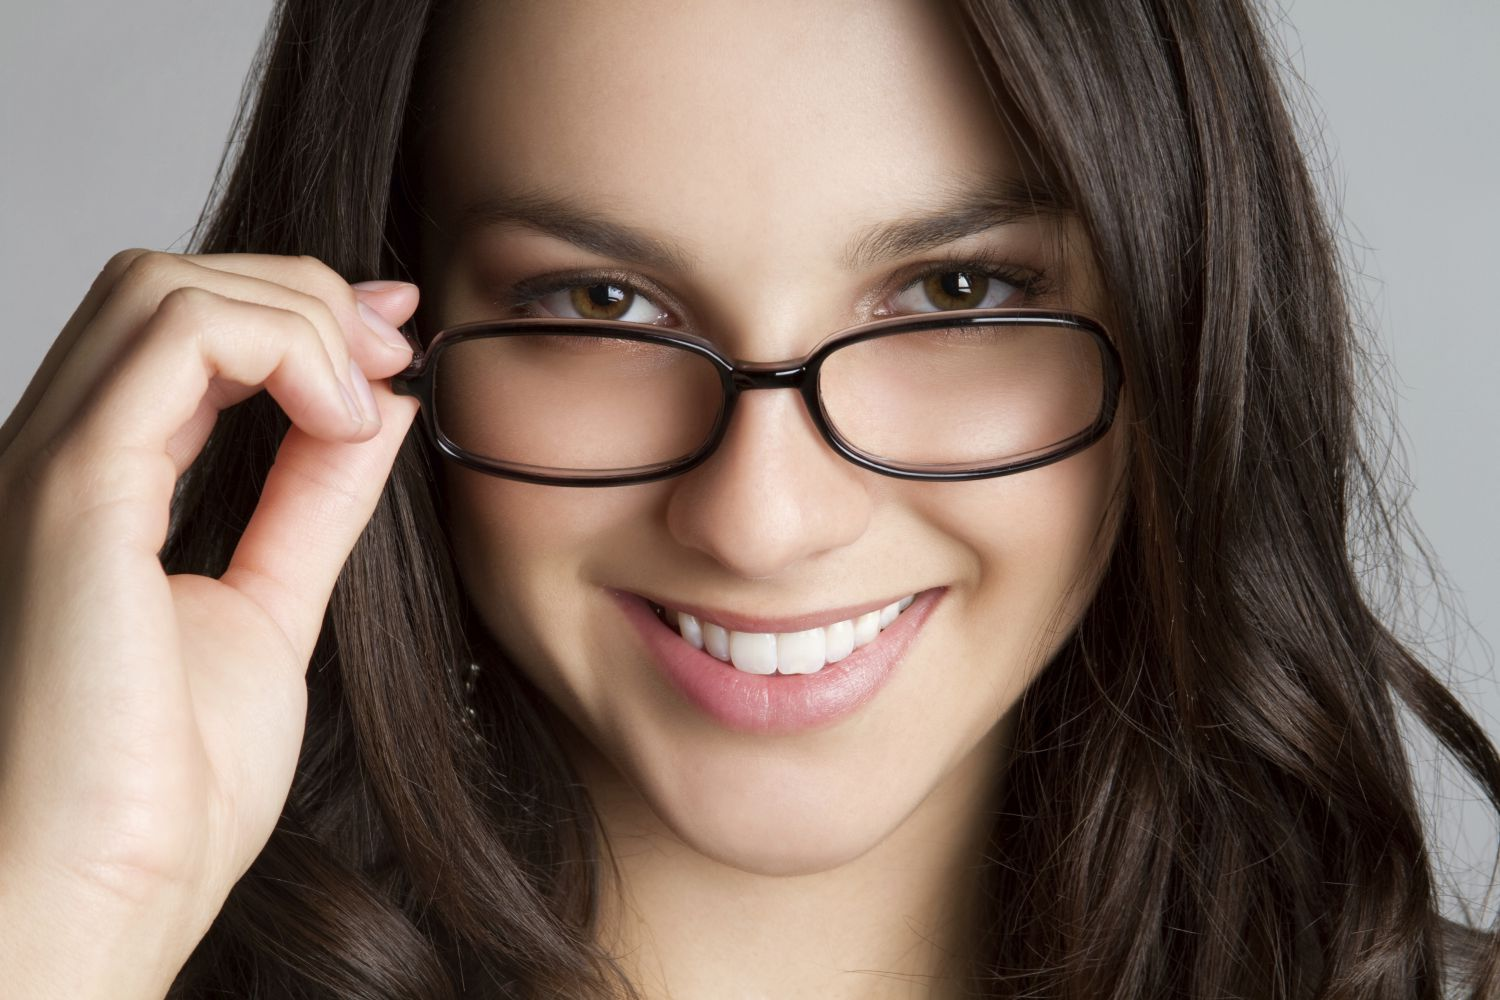 woman trying on glasses and contact lenses in Honolulu, HI